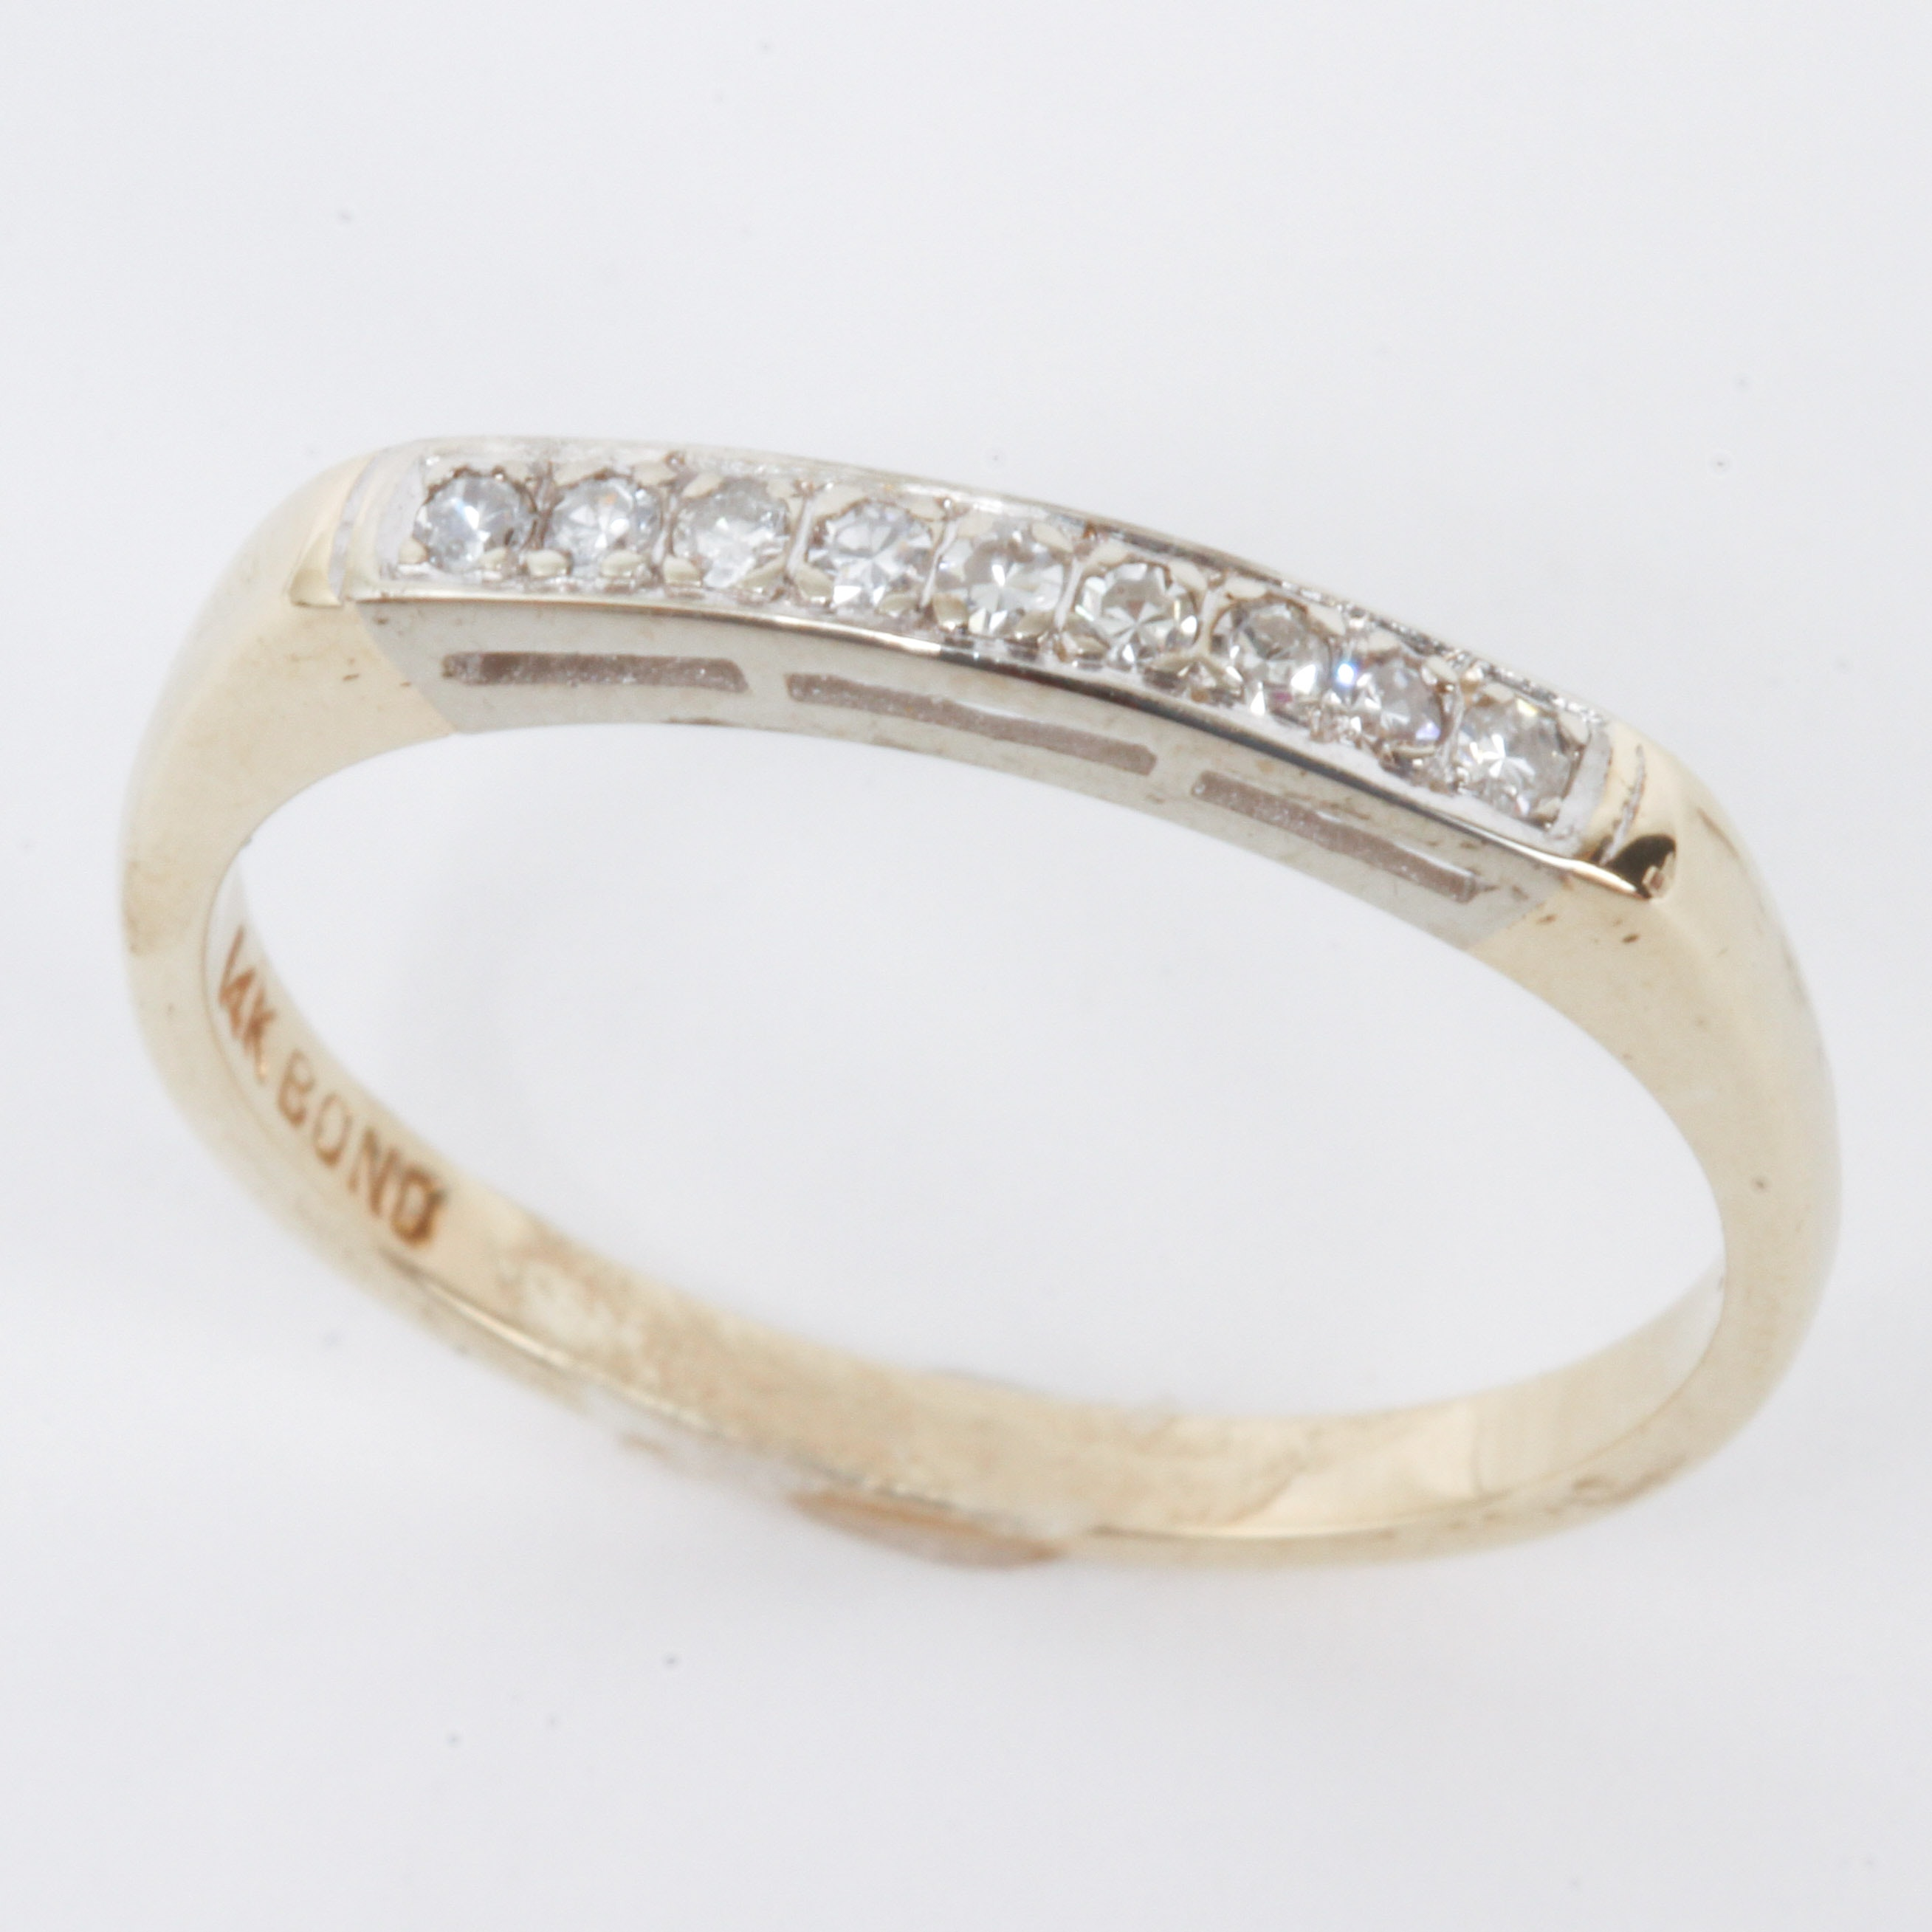 Vintage 14K Two-Tone Gold and Diamond Band